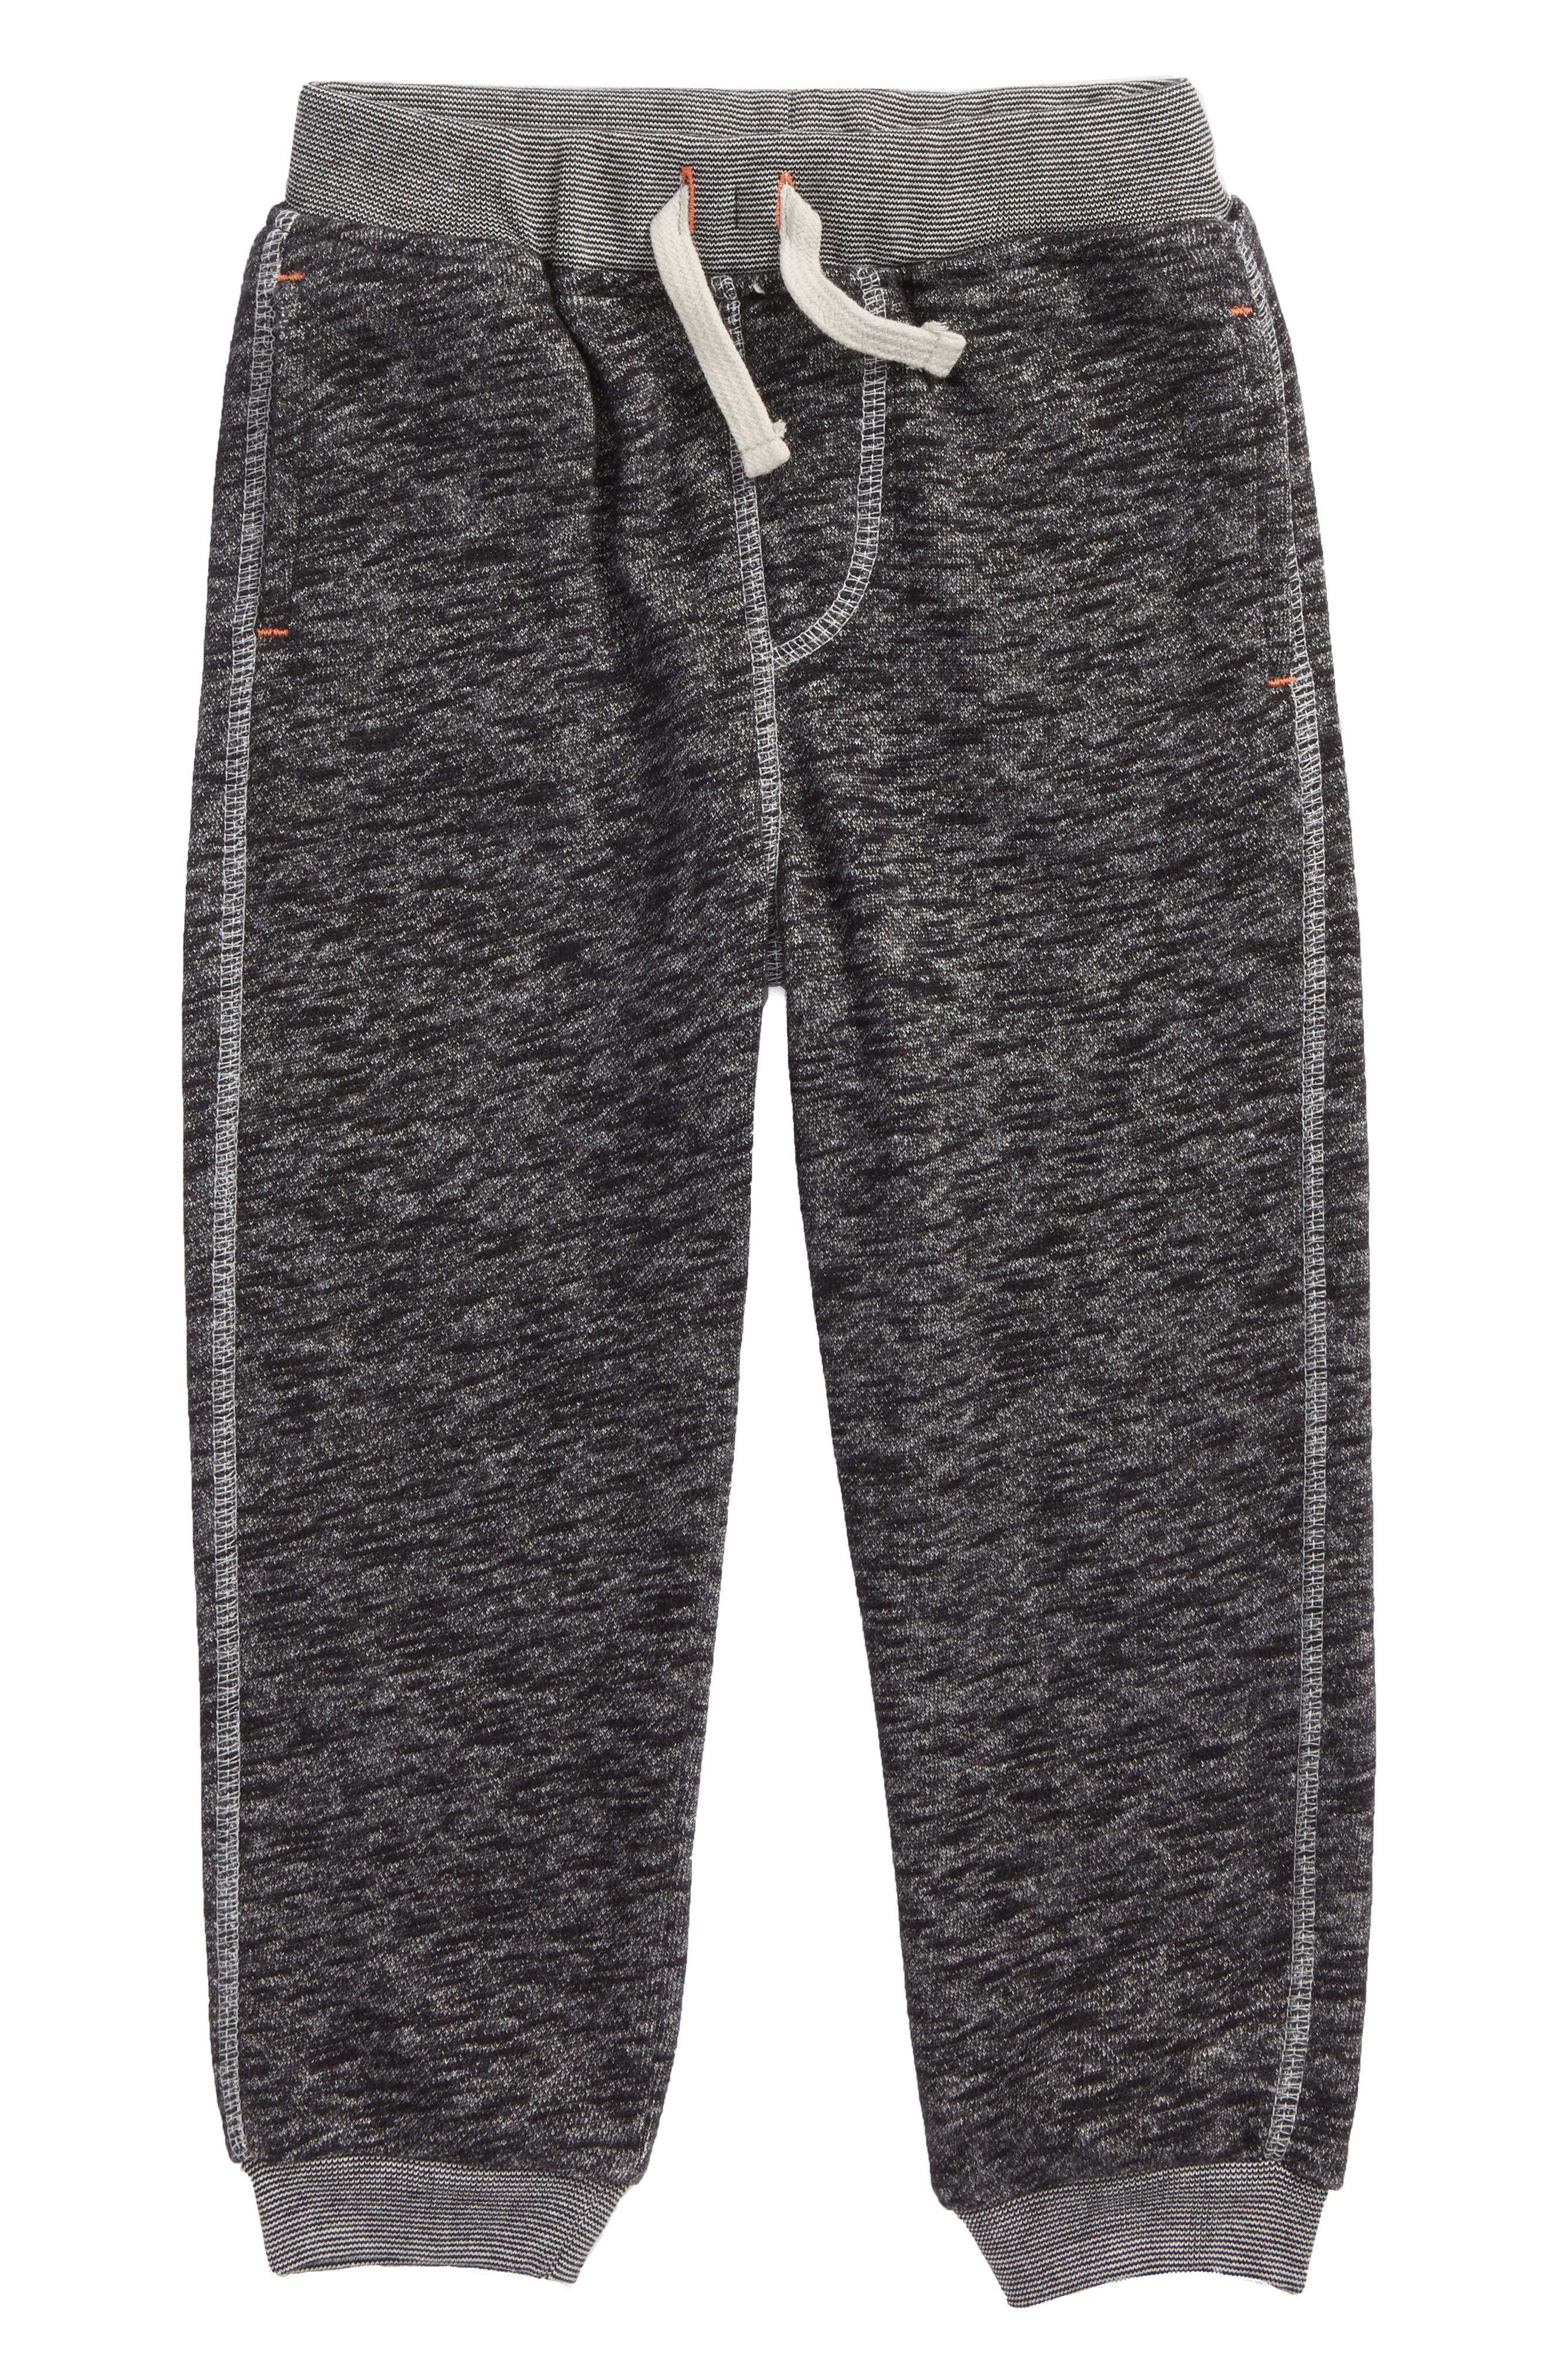 French Terry Jogger Pants,                         Main,                         color, Black